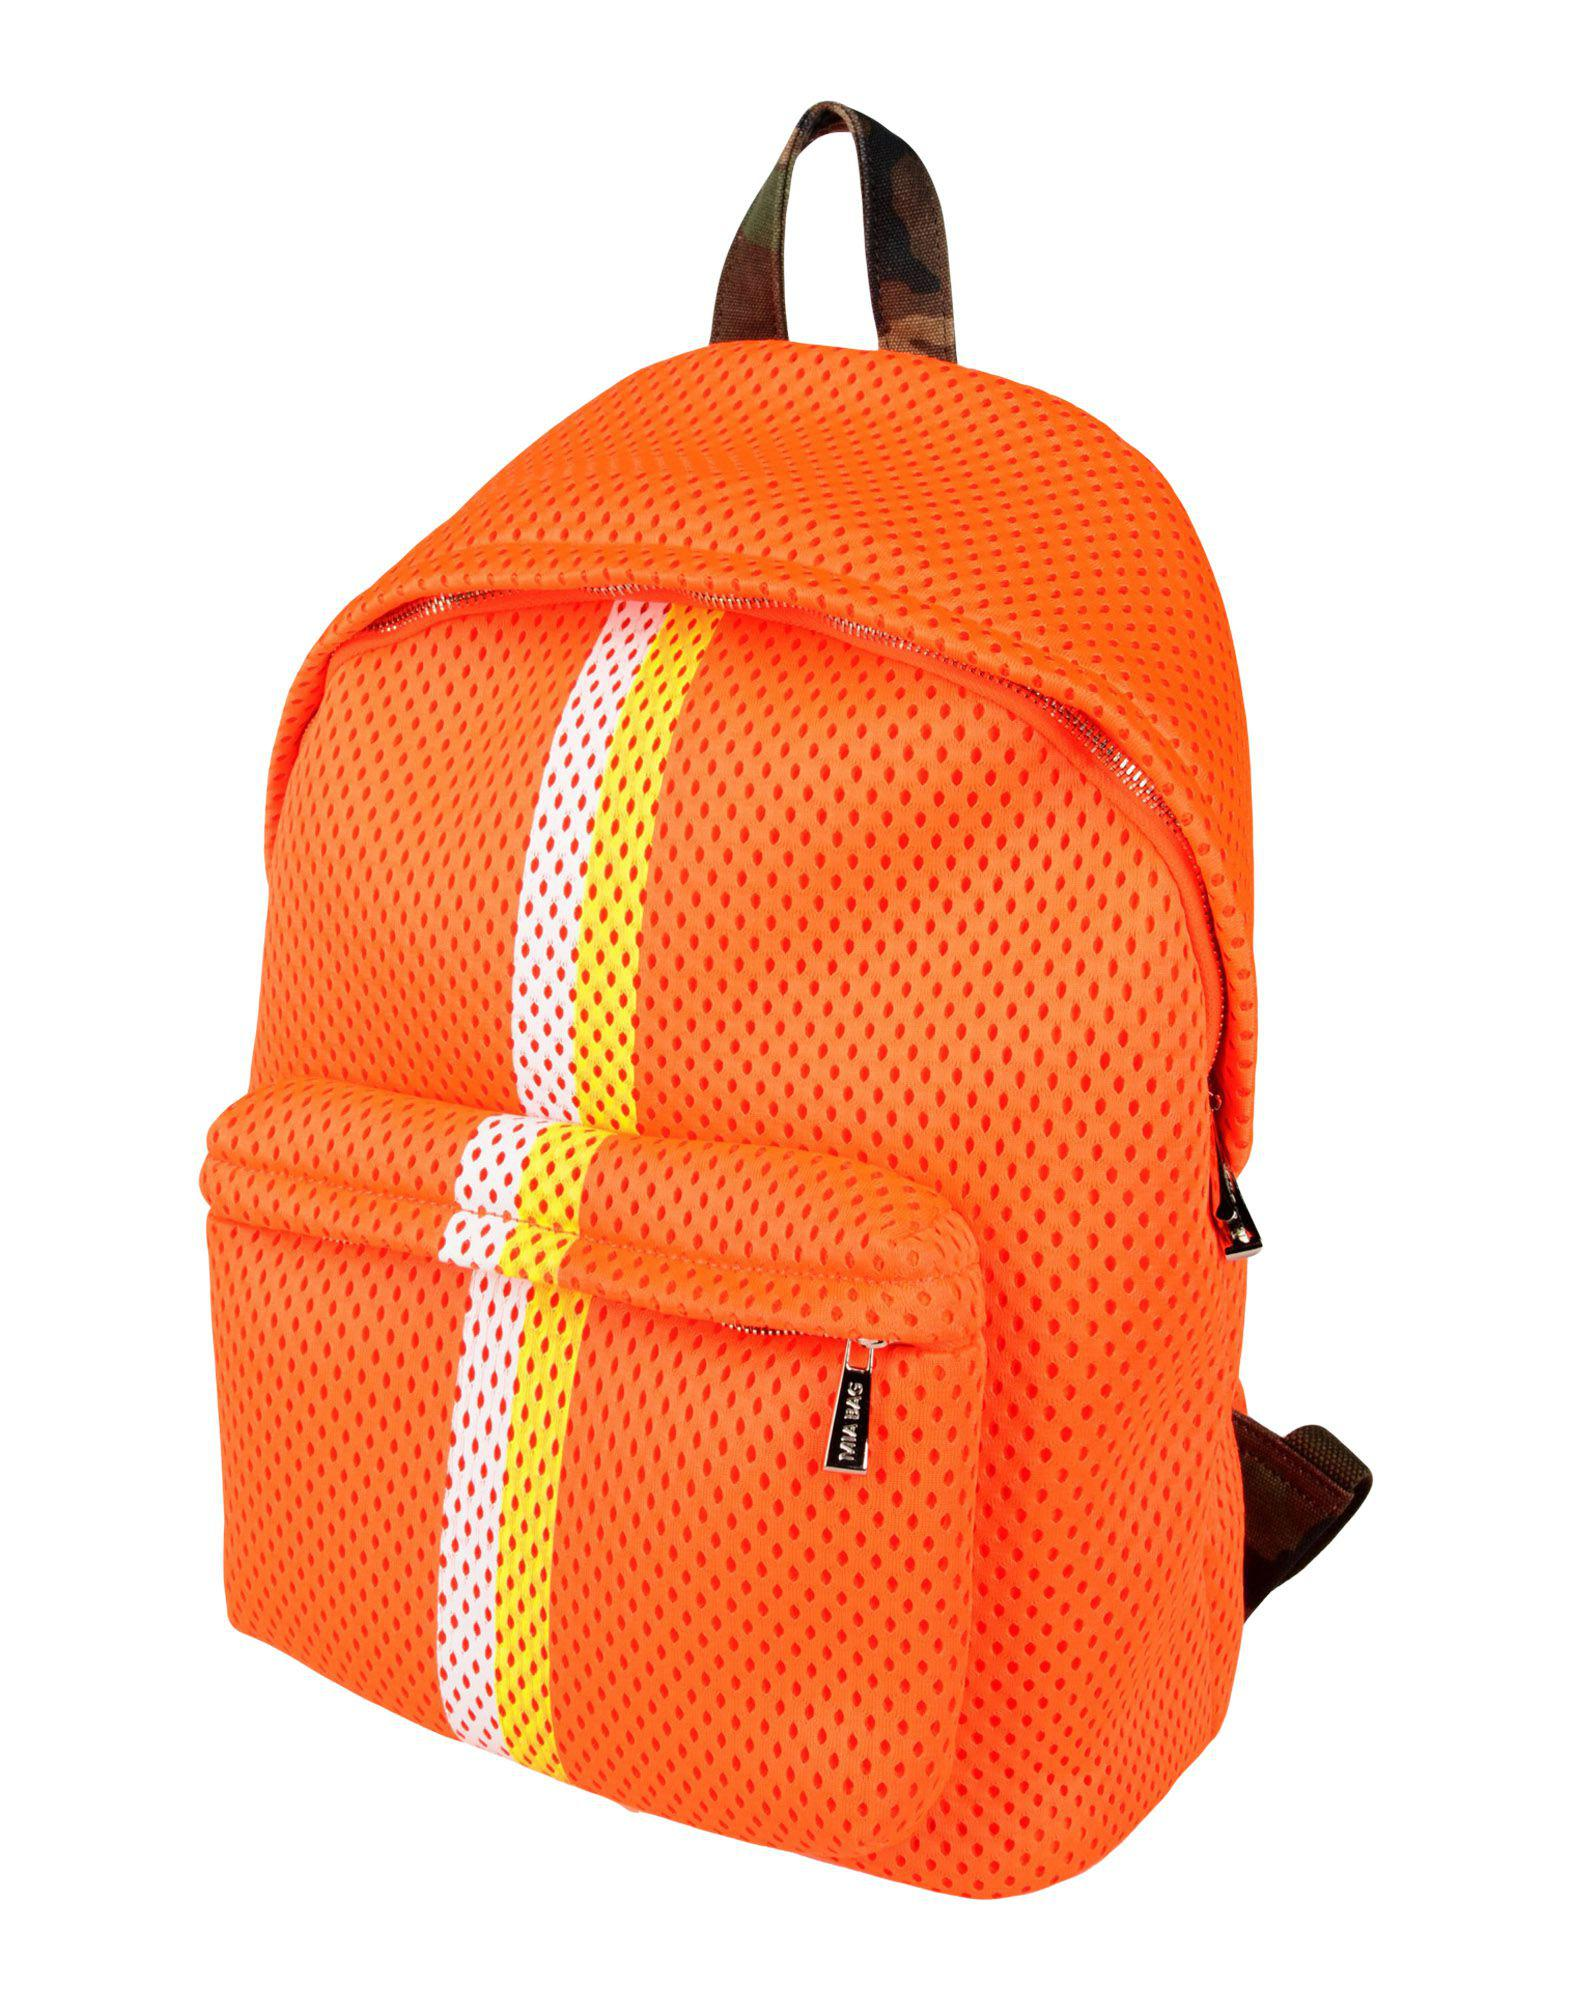 60dff850c293 Best Places To Buy Backpacks Online- Fenix Toulouse Handball